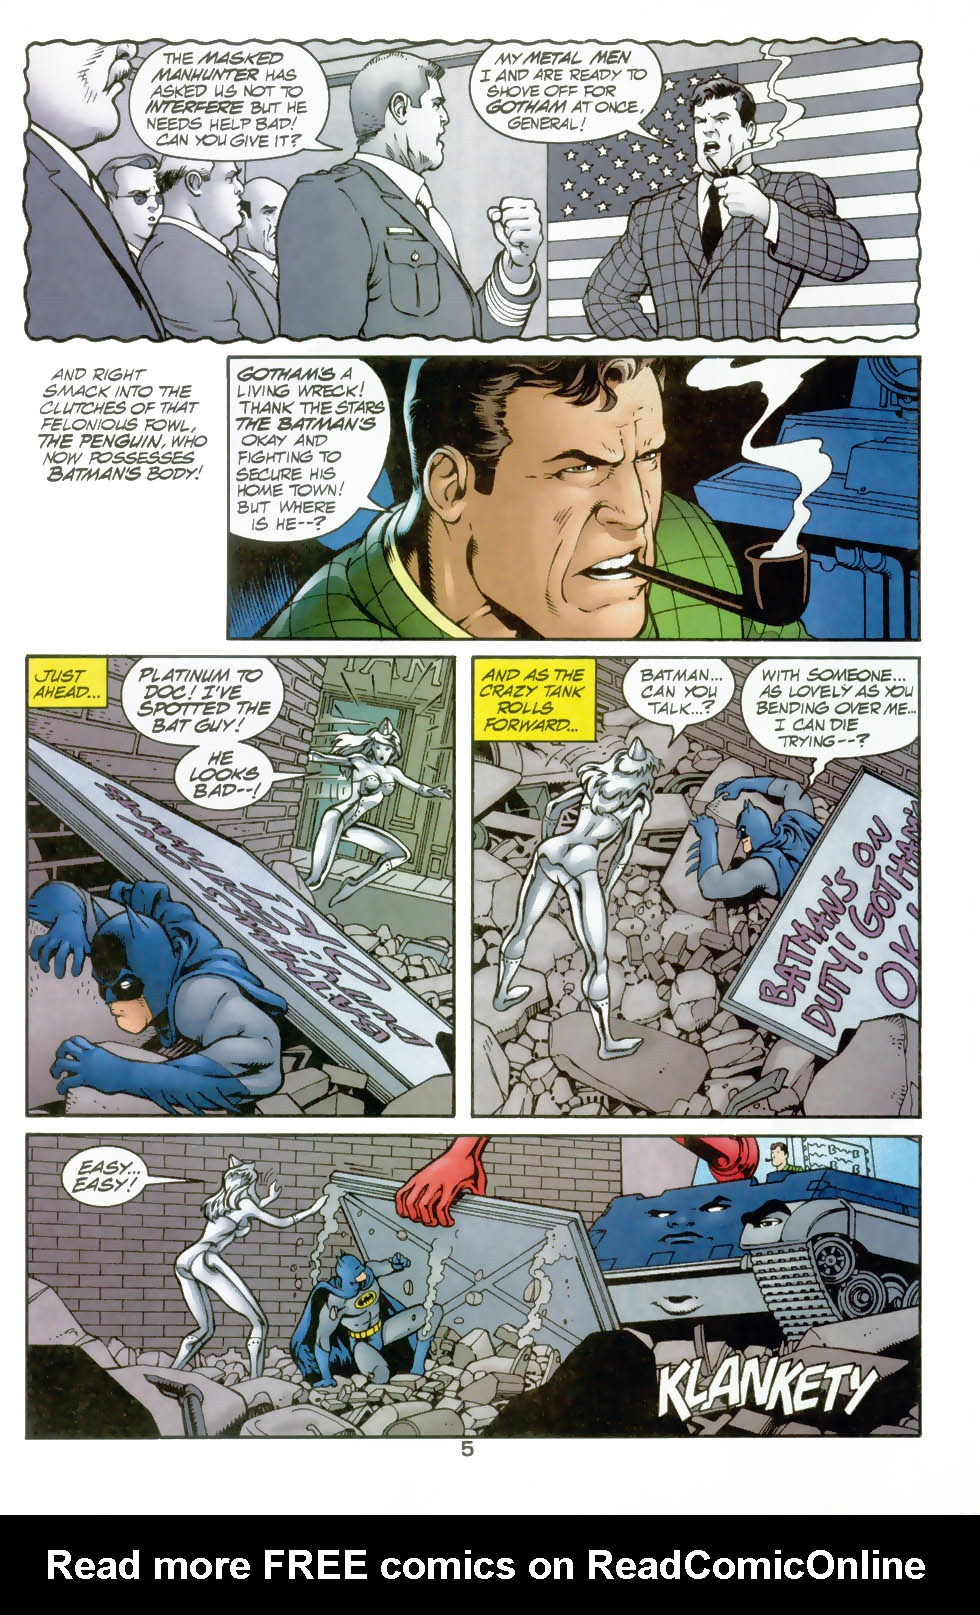 Read online Silver Age: The Brave and the Bold comic -  Issue # Full - 6